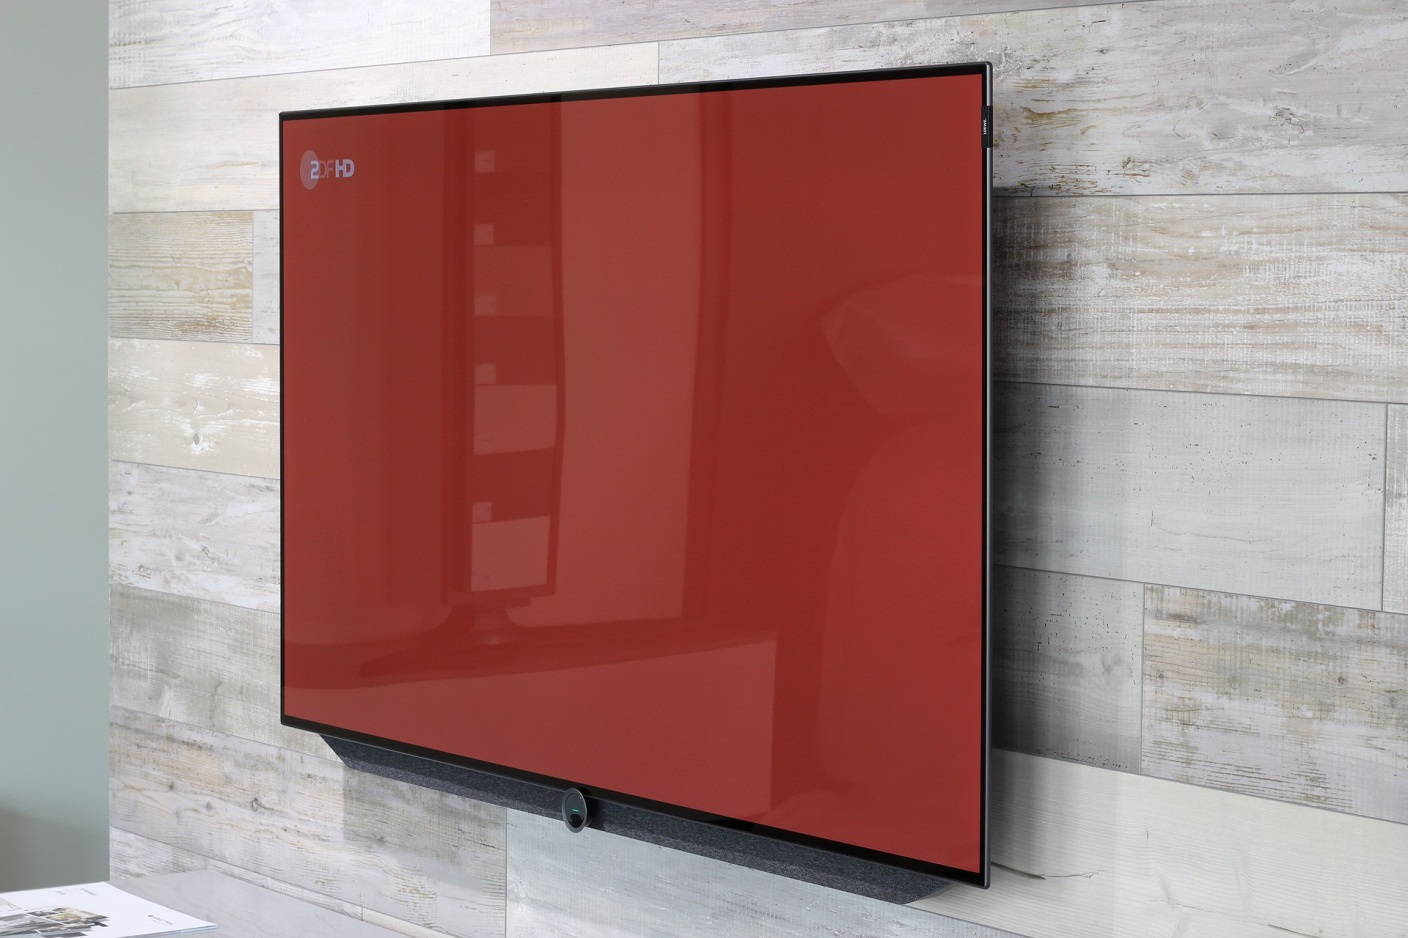 TV Wall Mounts can change the look of your living room